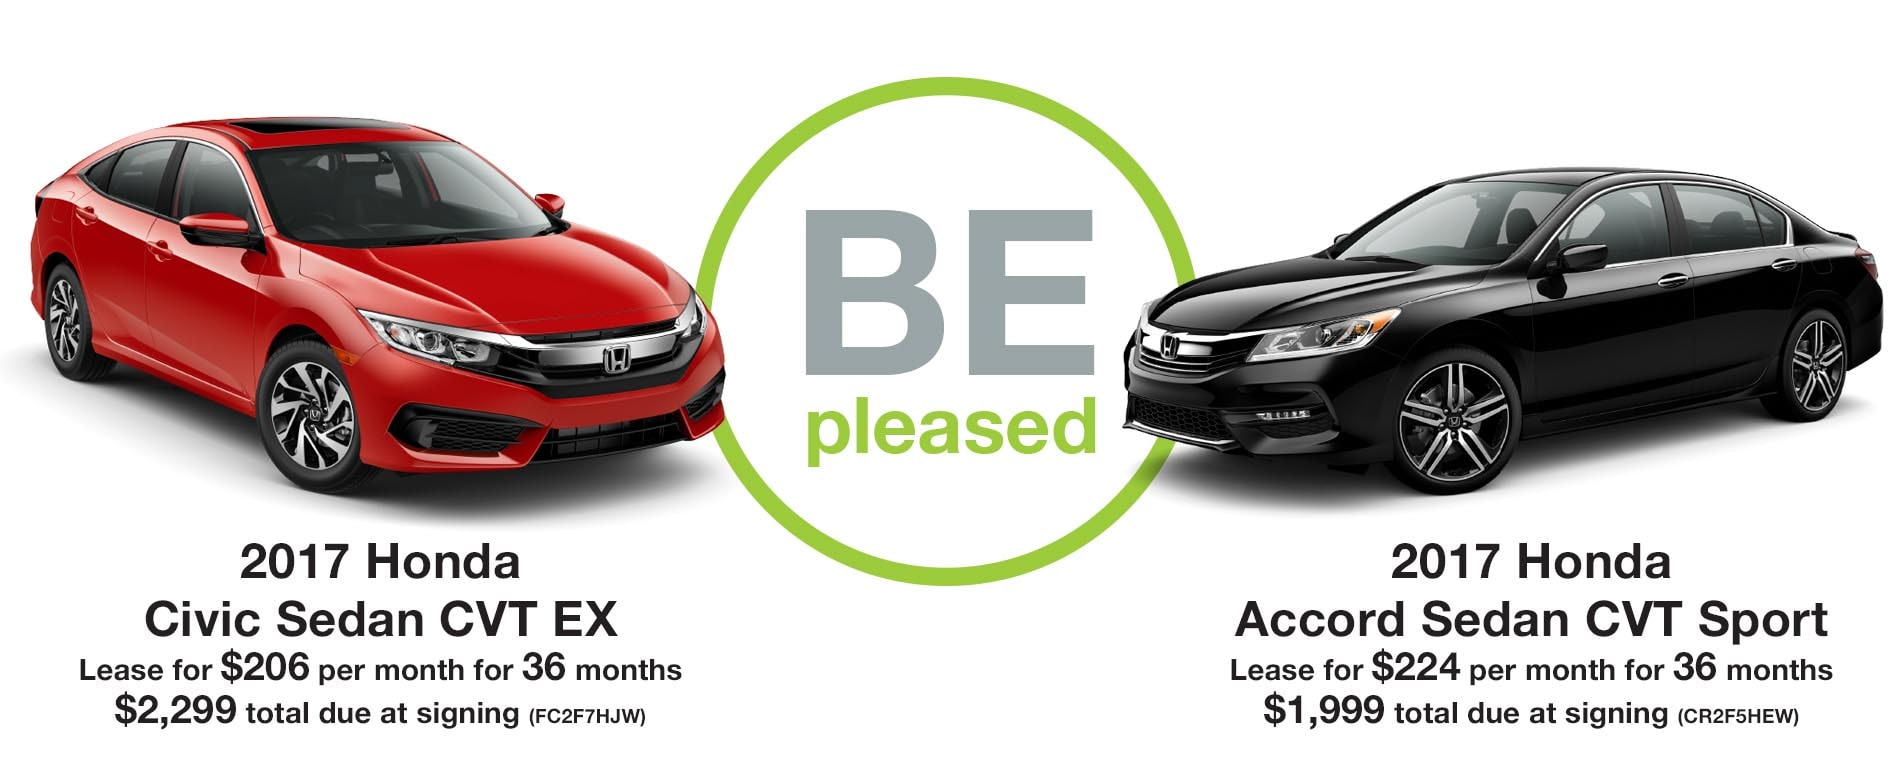 BE PLEASED. Lease a Honda Civic for $206 per month with $2,299 due at signing or an Accord $224 per month with $1,999 due at signing.